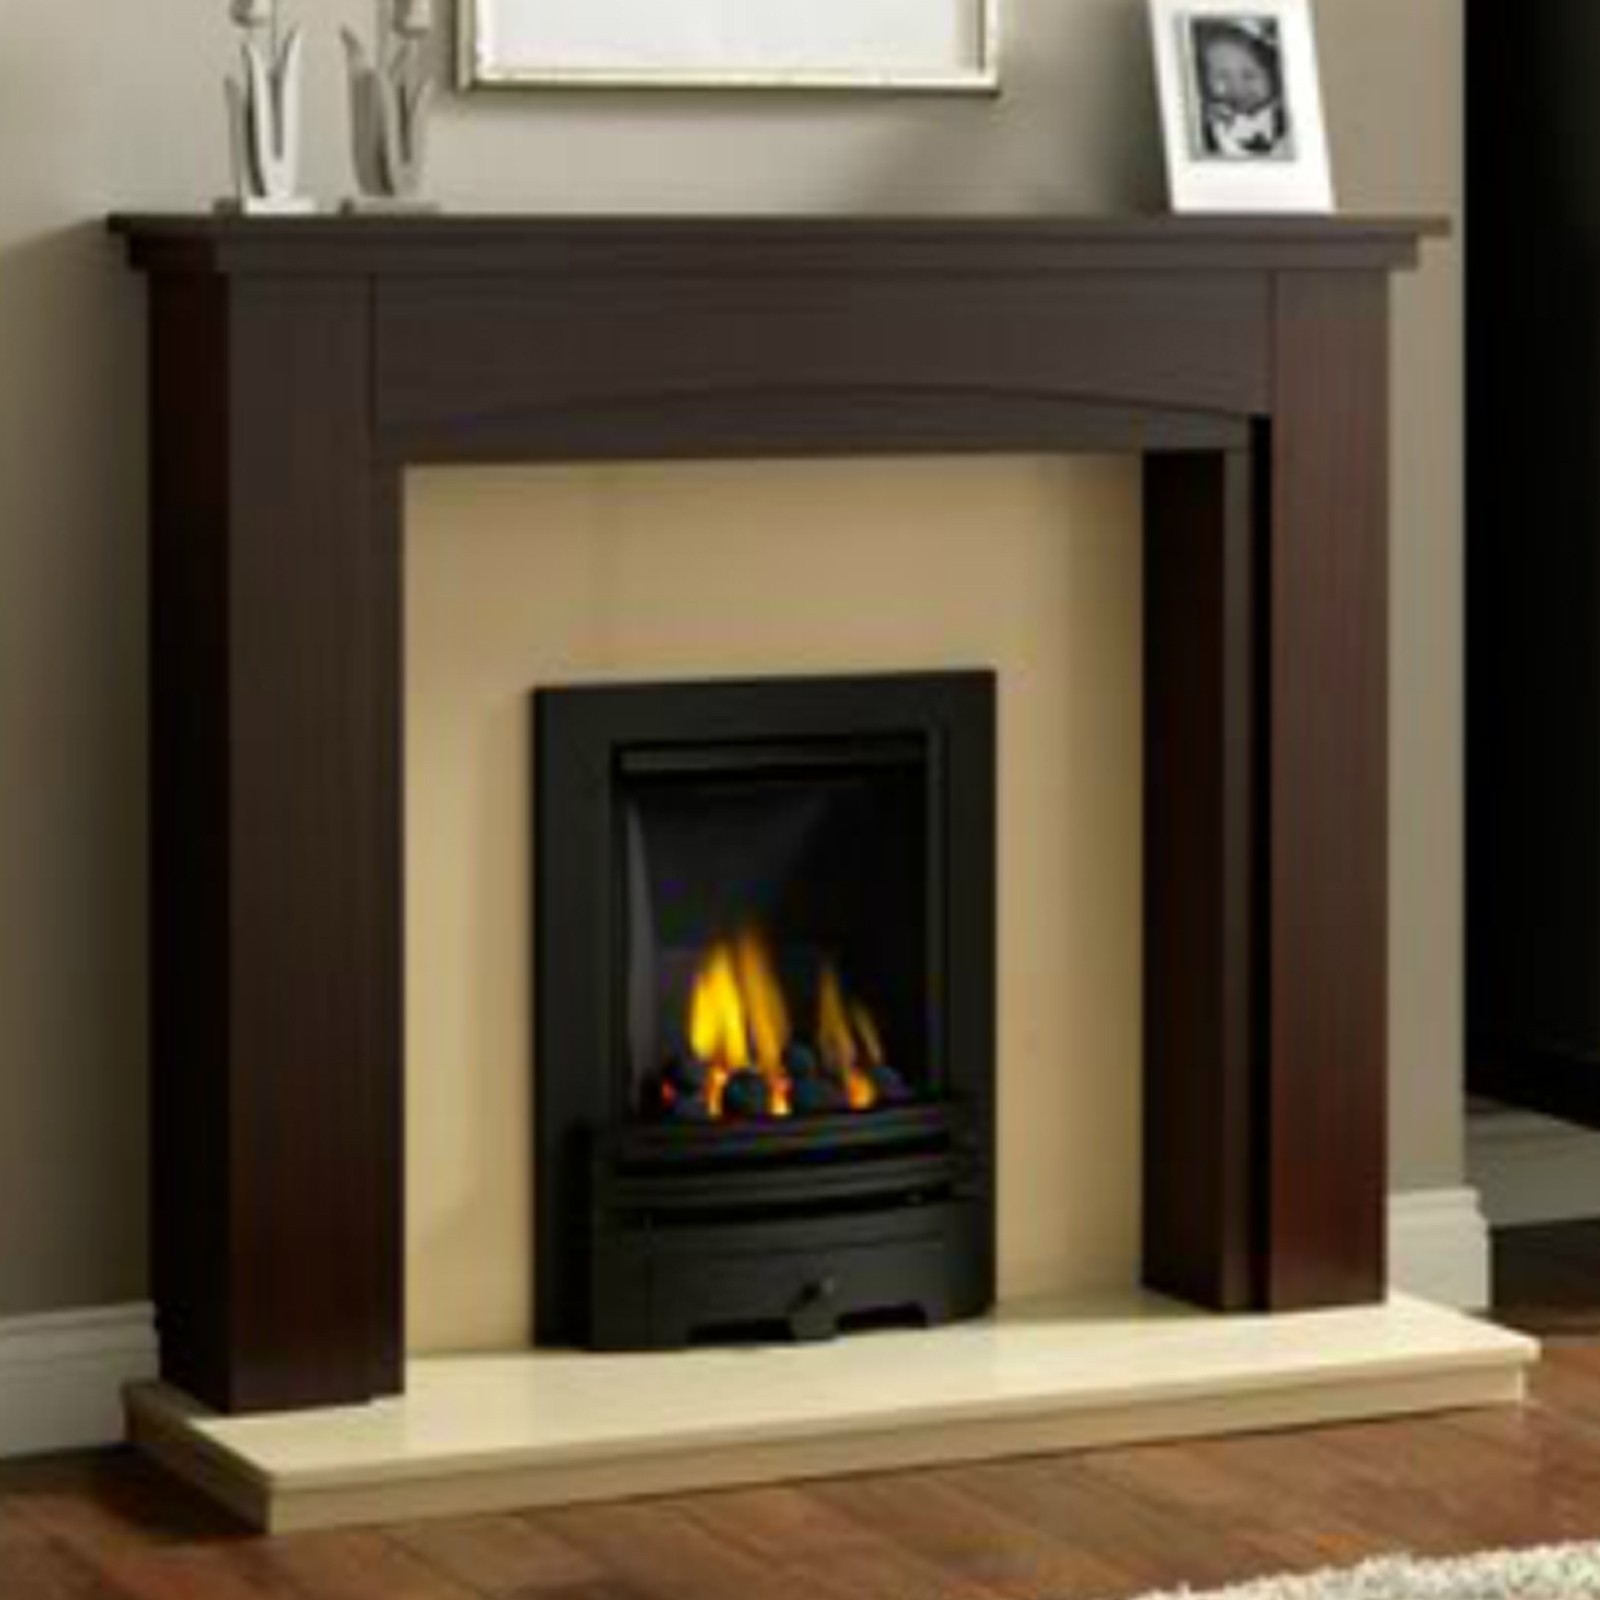 Brown Fireplace Mantel : Best prices gb mantels tiverton fireplace suite super